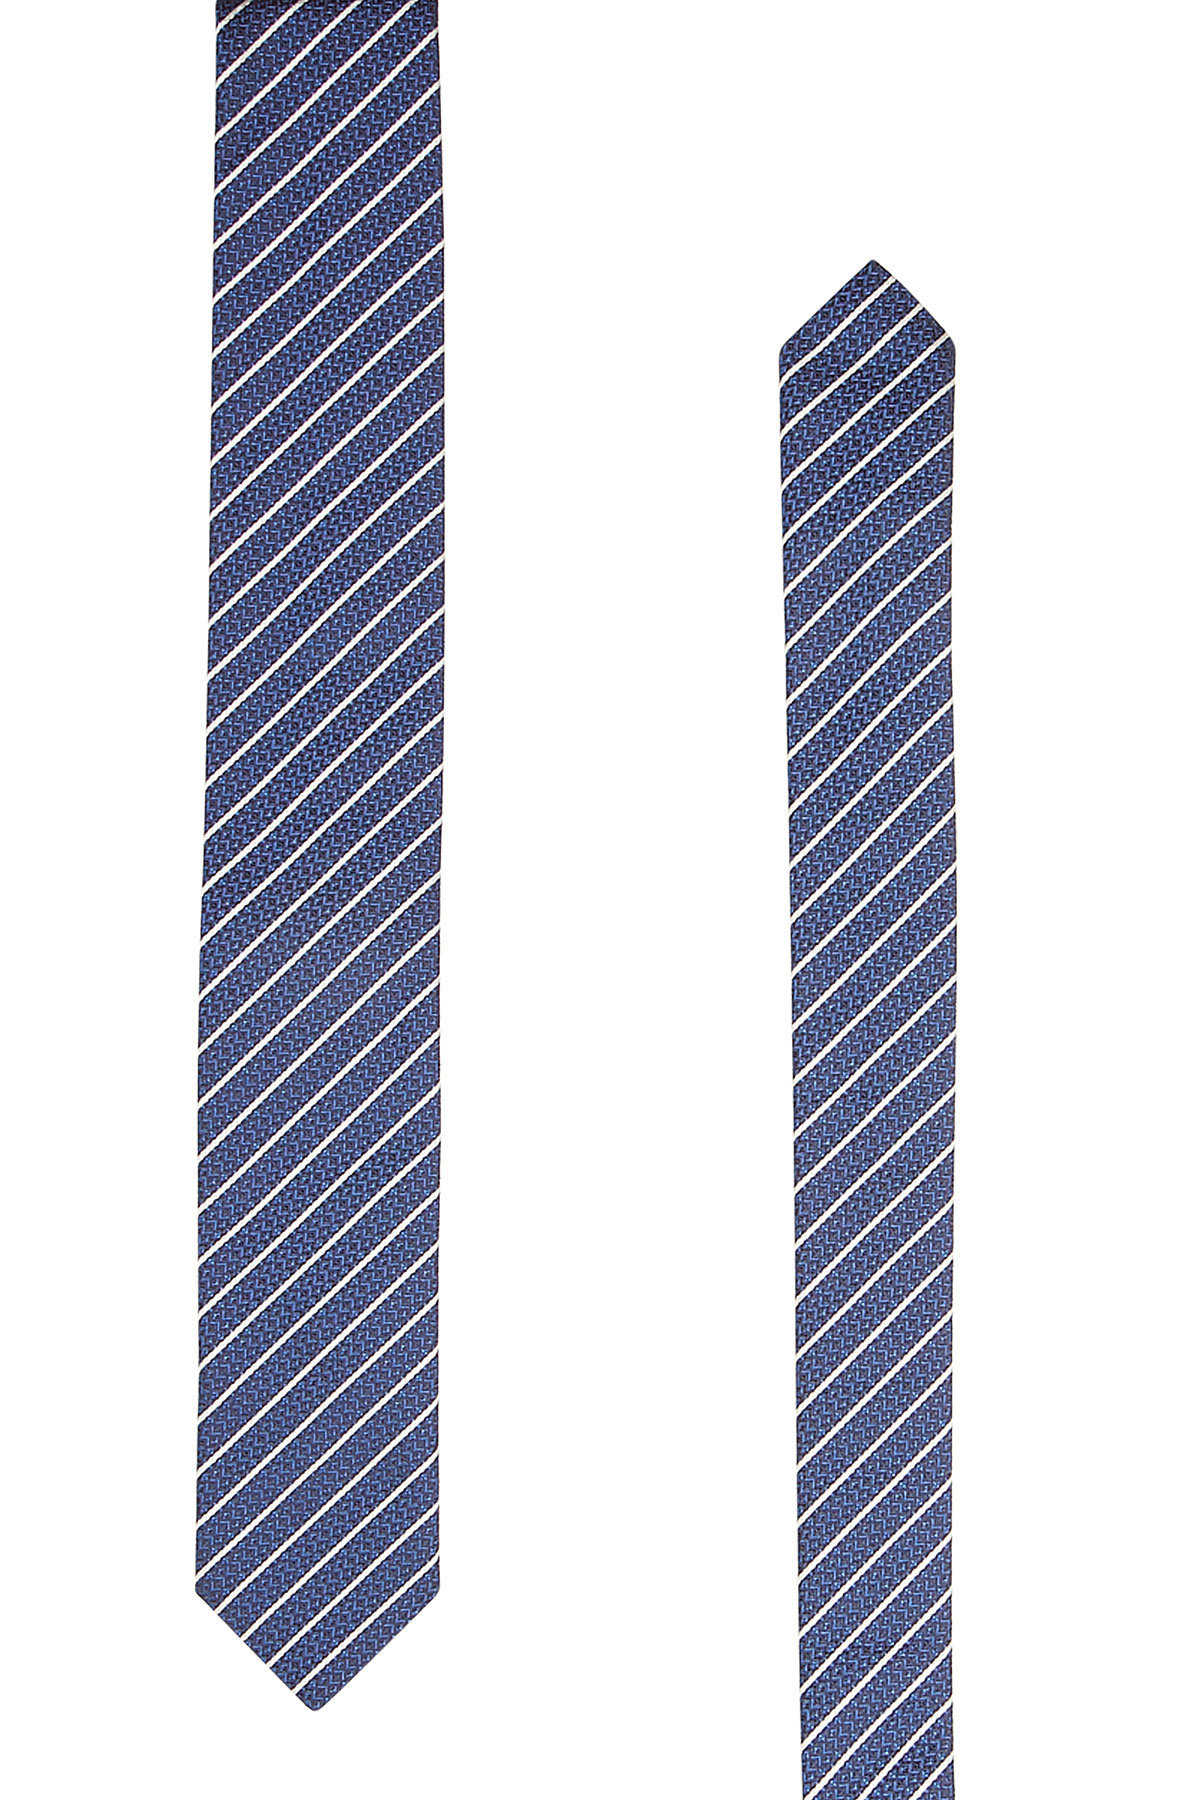 823e303a26a Hugo Striped Silk Tie GOOFASH 296473